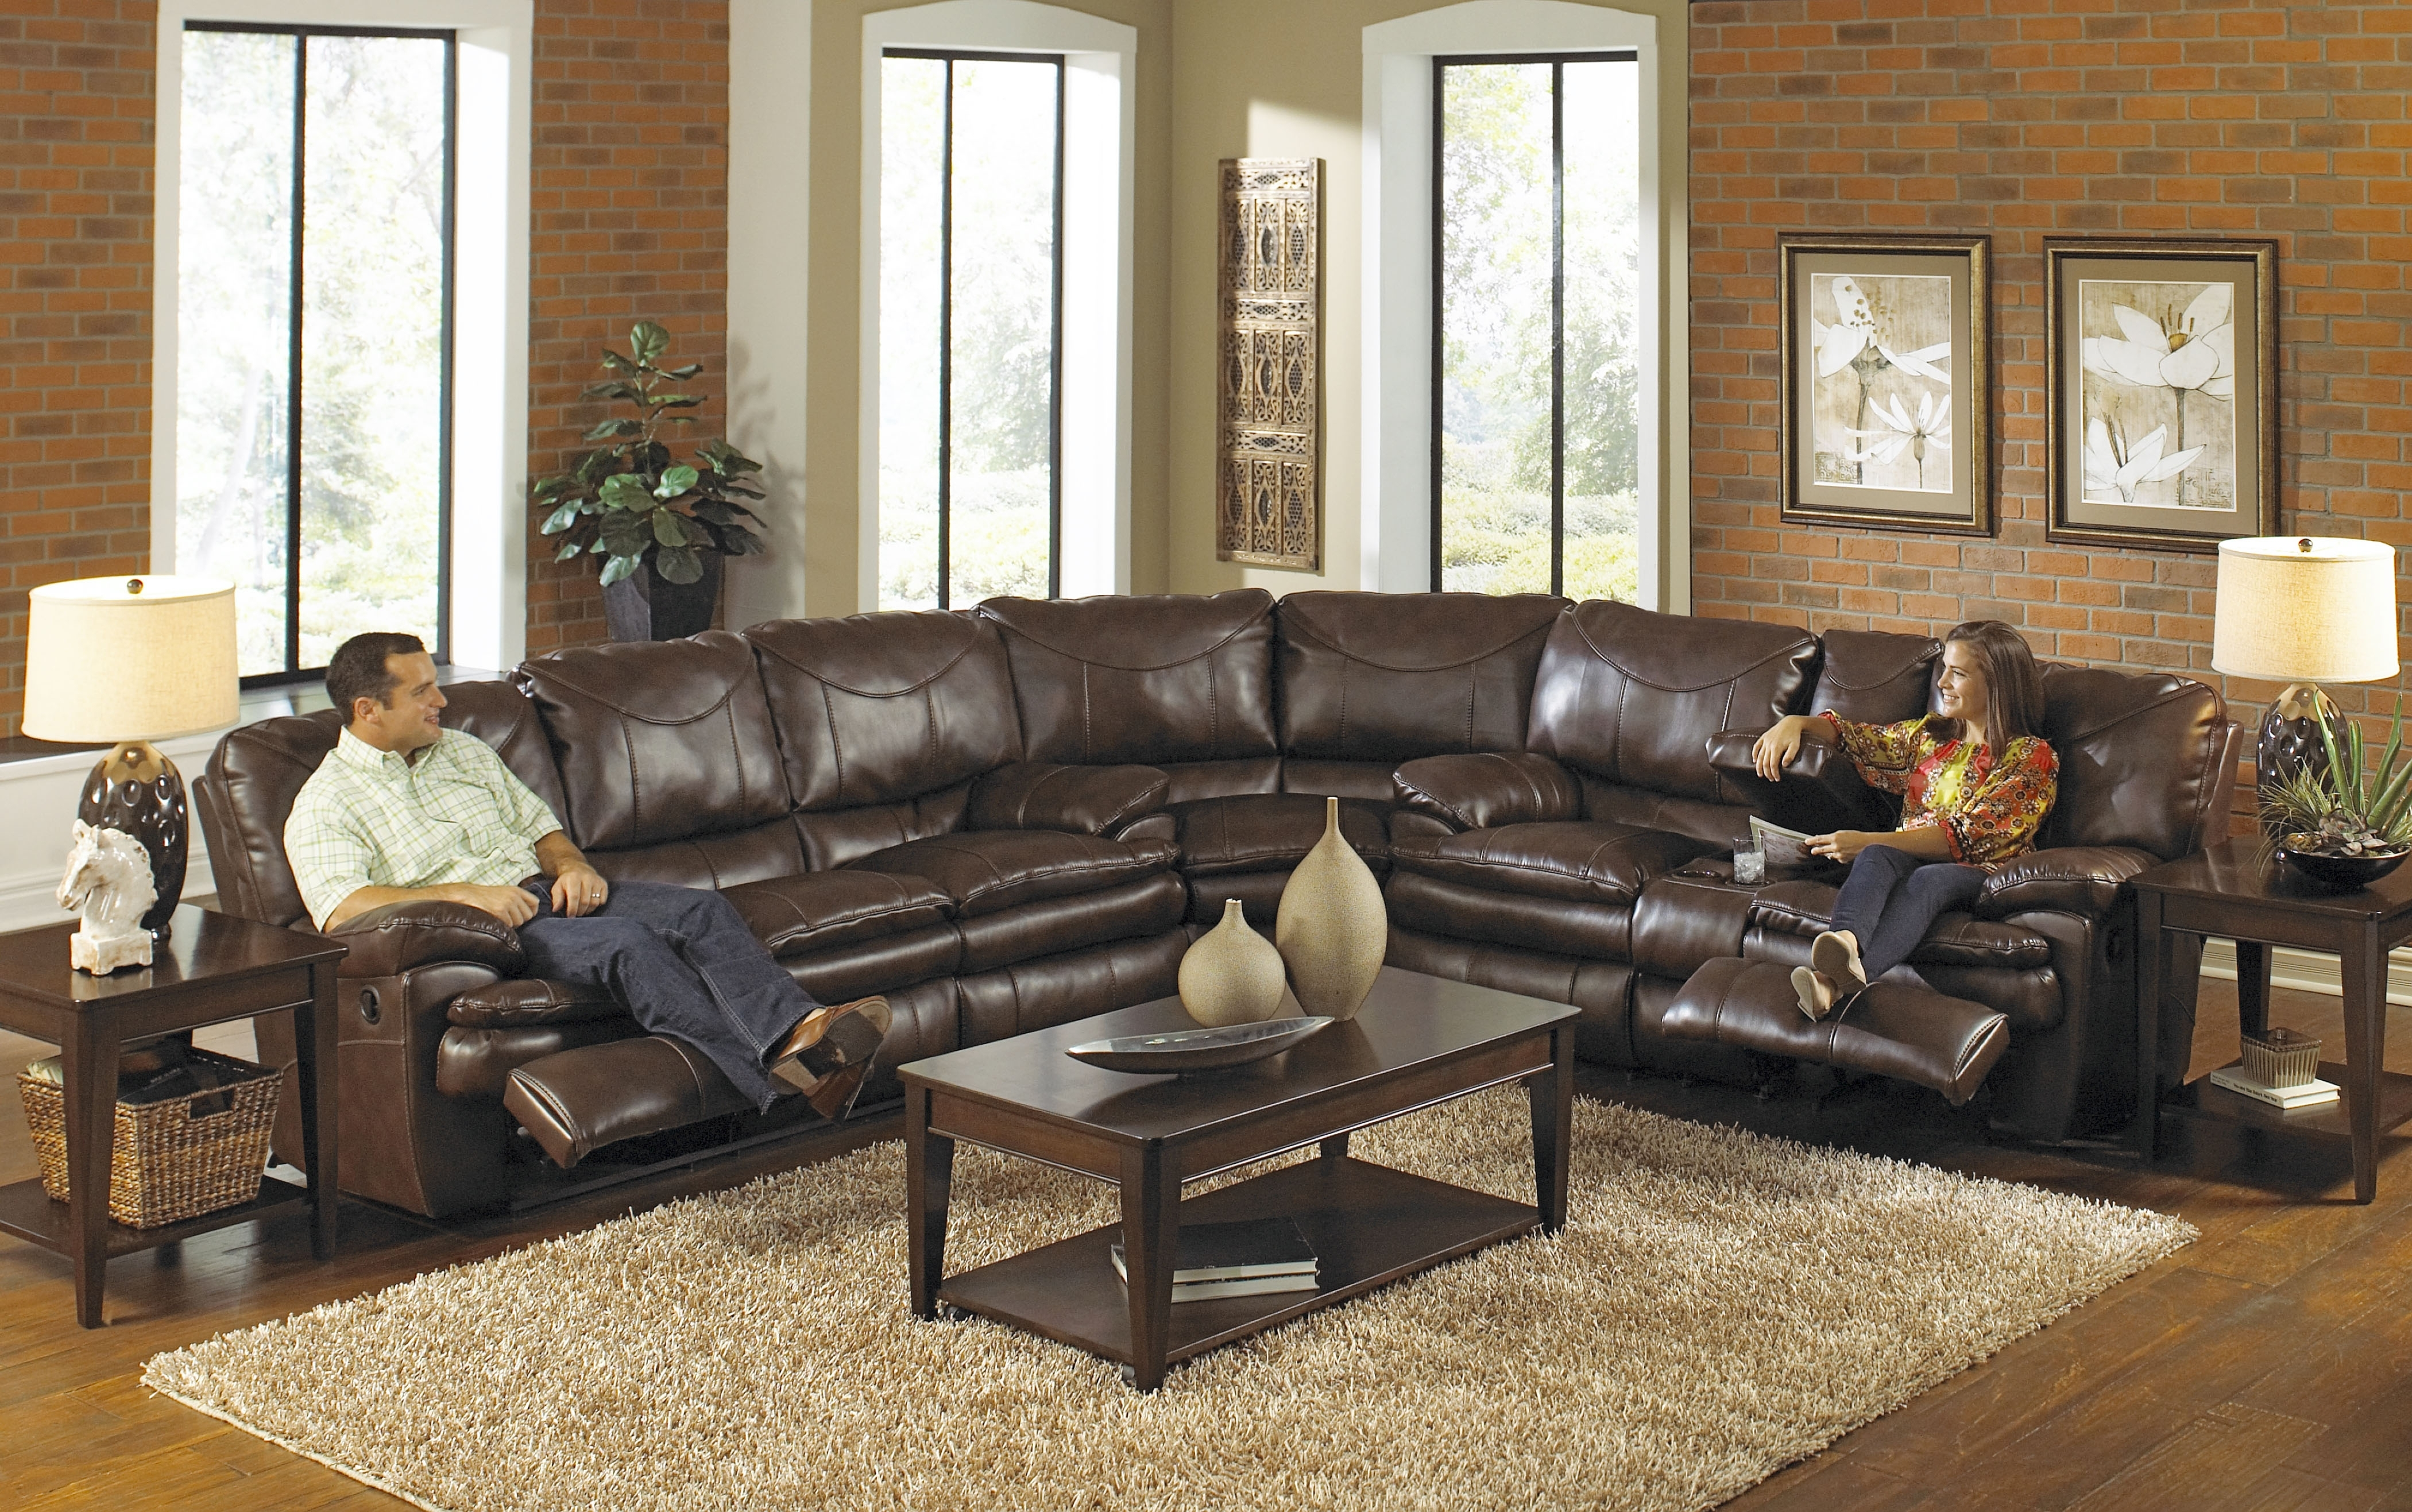 Popular Photo of Sectional Sofas With Recliners Leather